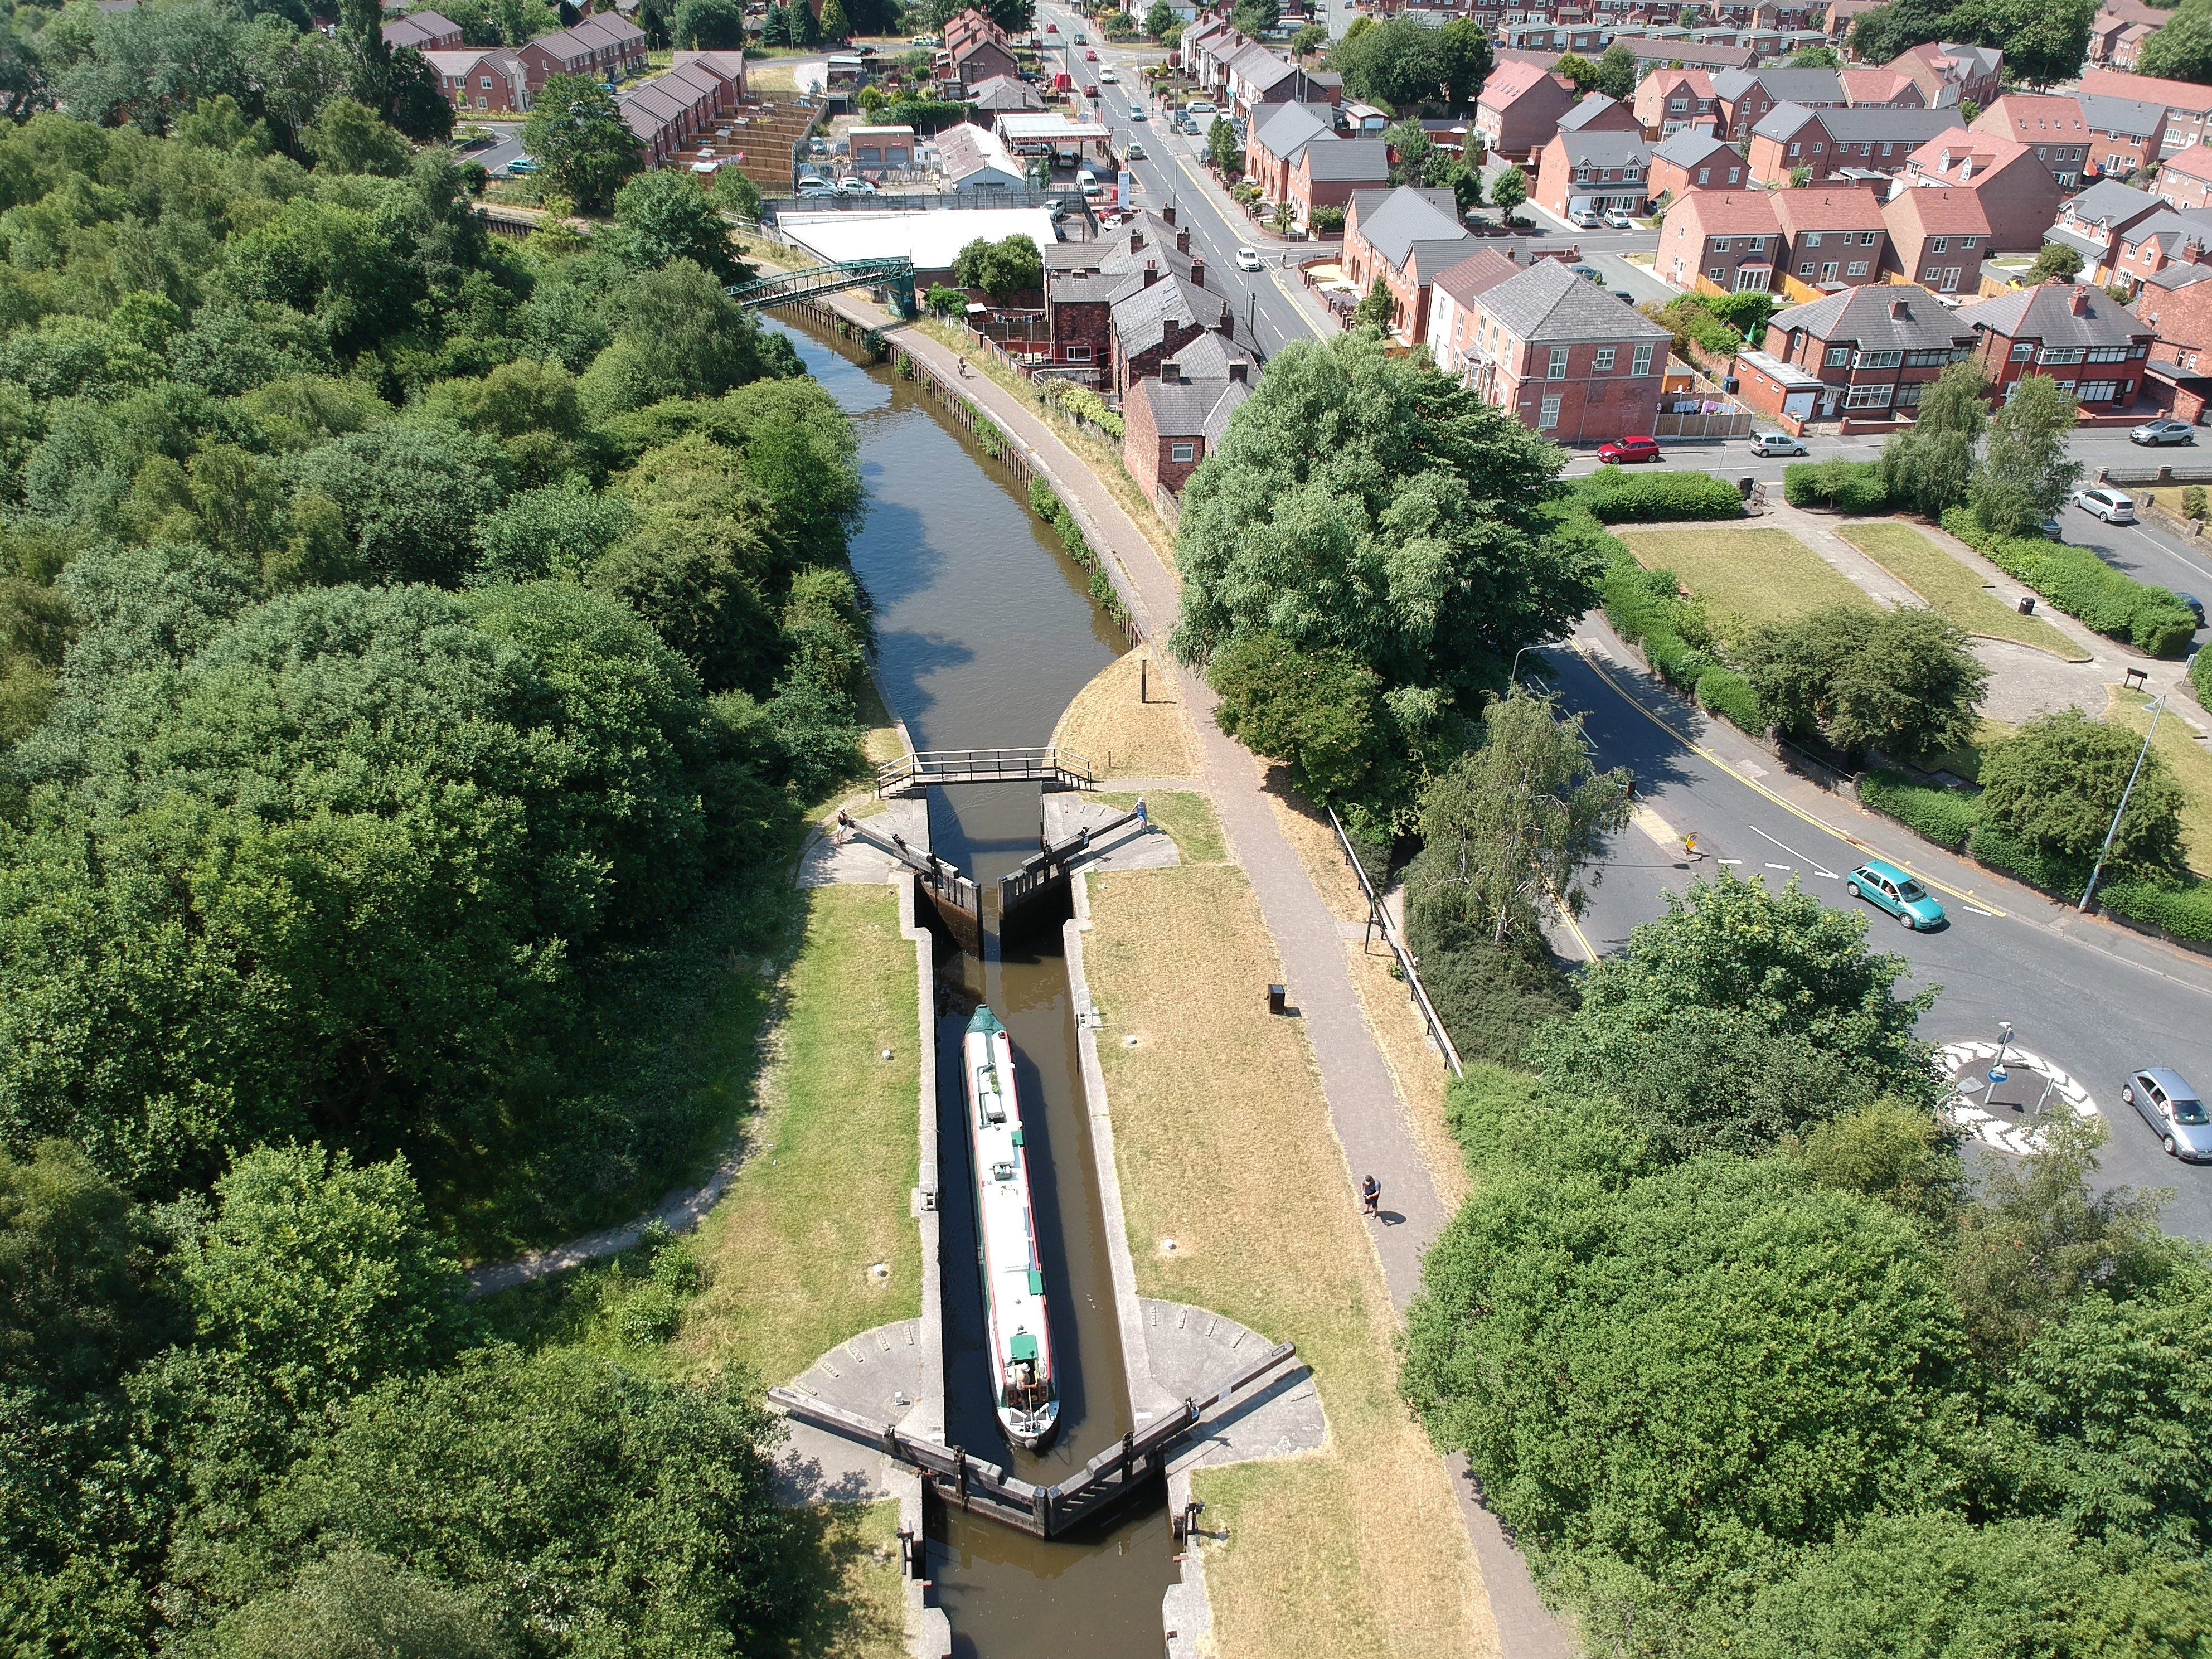 Top Lock of the Leigh Branch by Barry Teutenberg